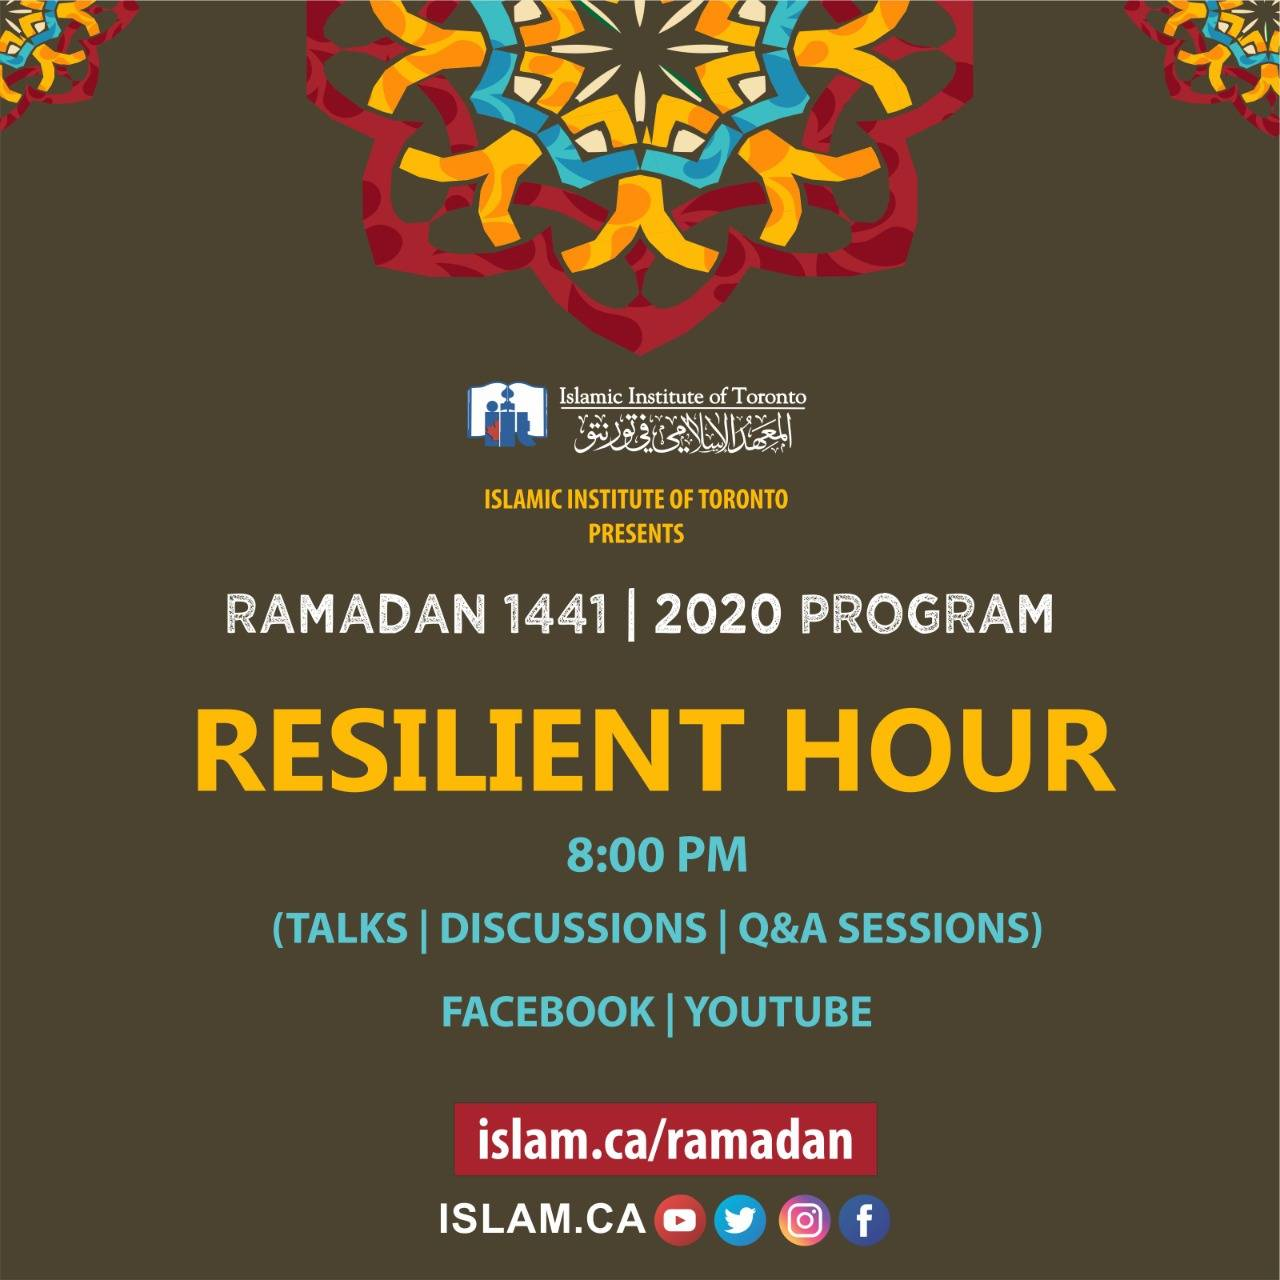 resilient hour at 8 pm